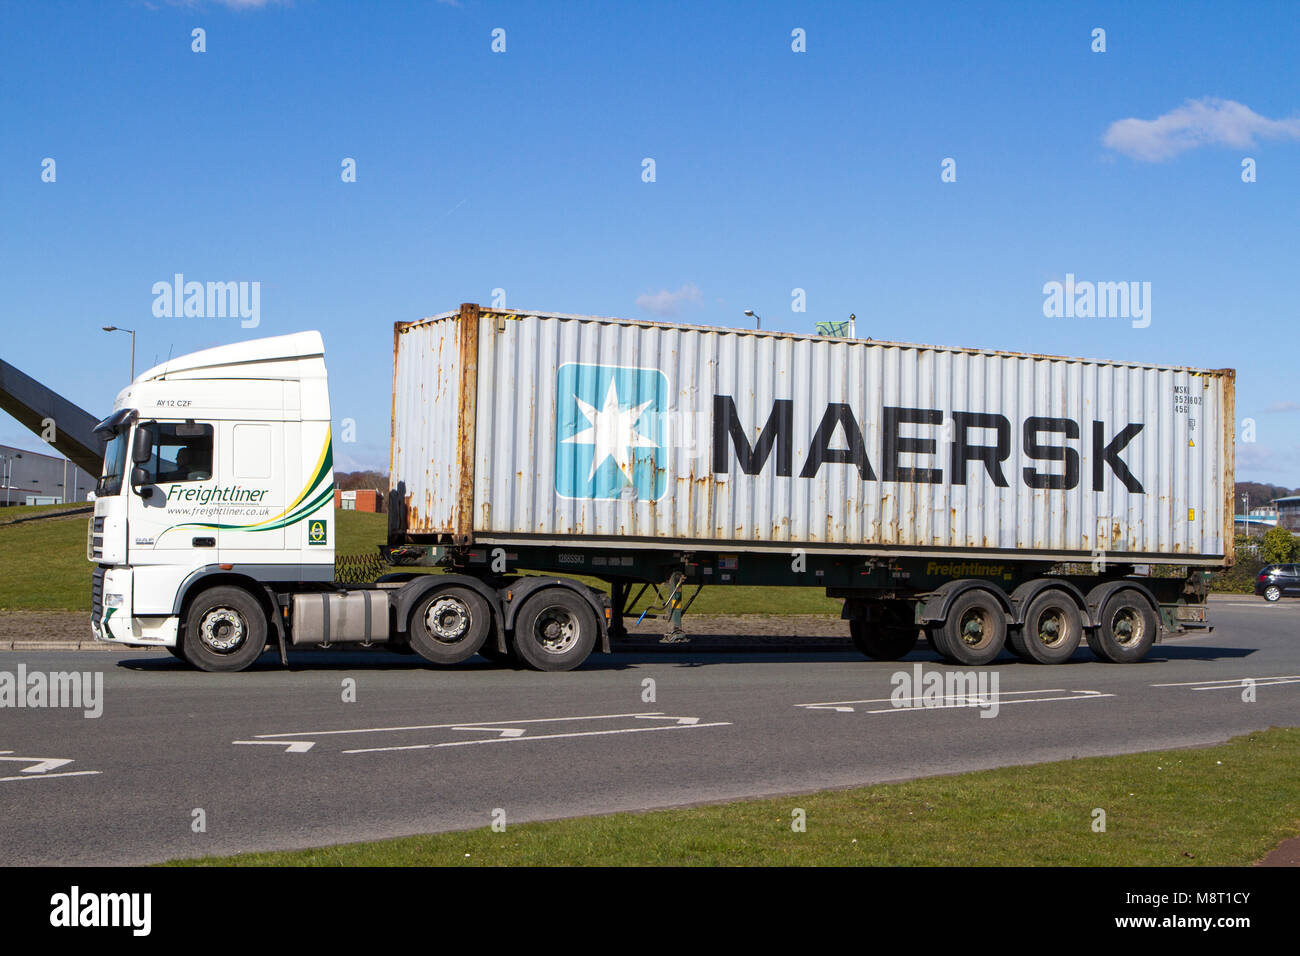 Maersk Container Industry Stock Photos & Maersk Container Industry